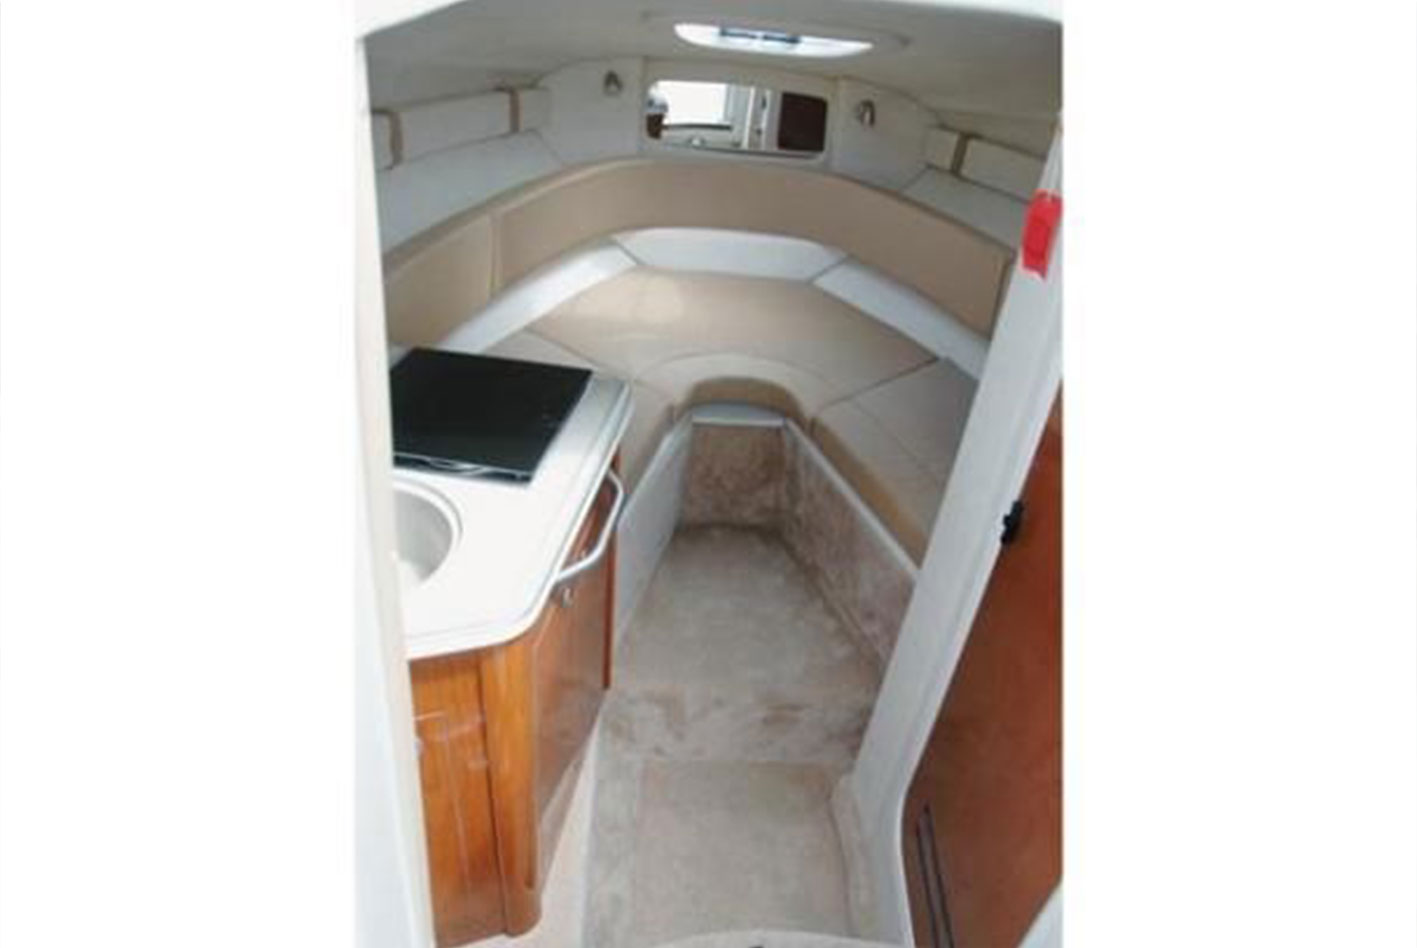 Searay-230-sundancer05